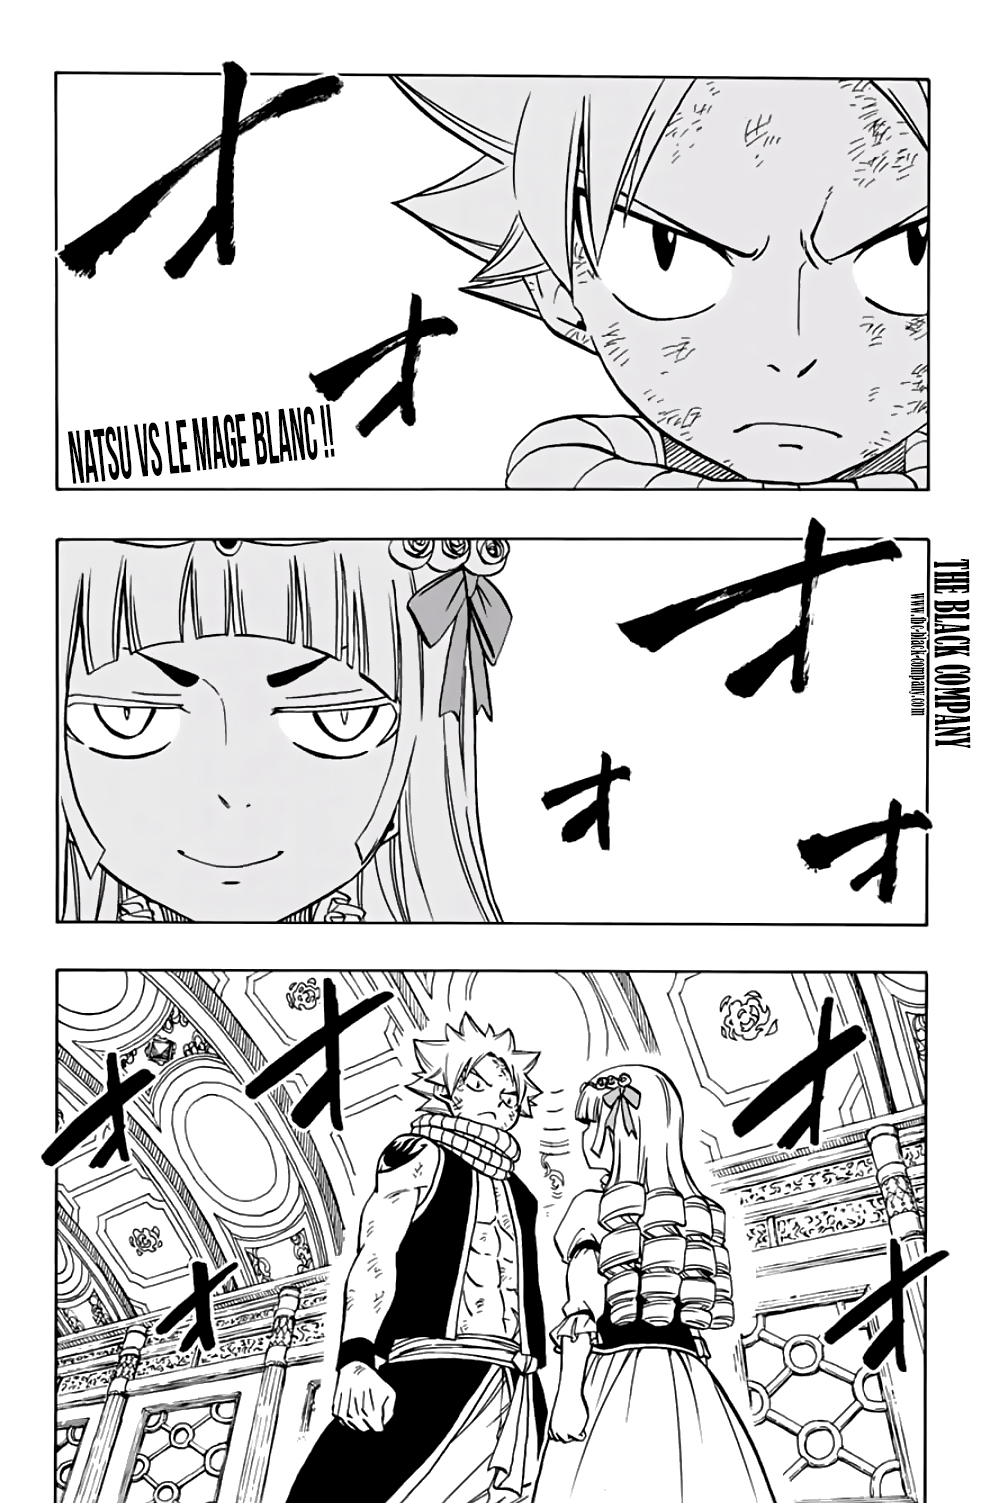 https://nine.mangadogs.com/fr_manga/pic2/32/1248/520049/FairyTail100YearsQuest46VF_1_590.jpg Page 2